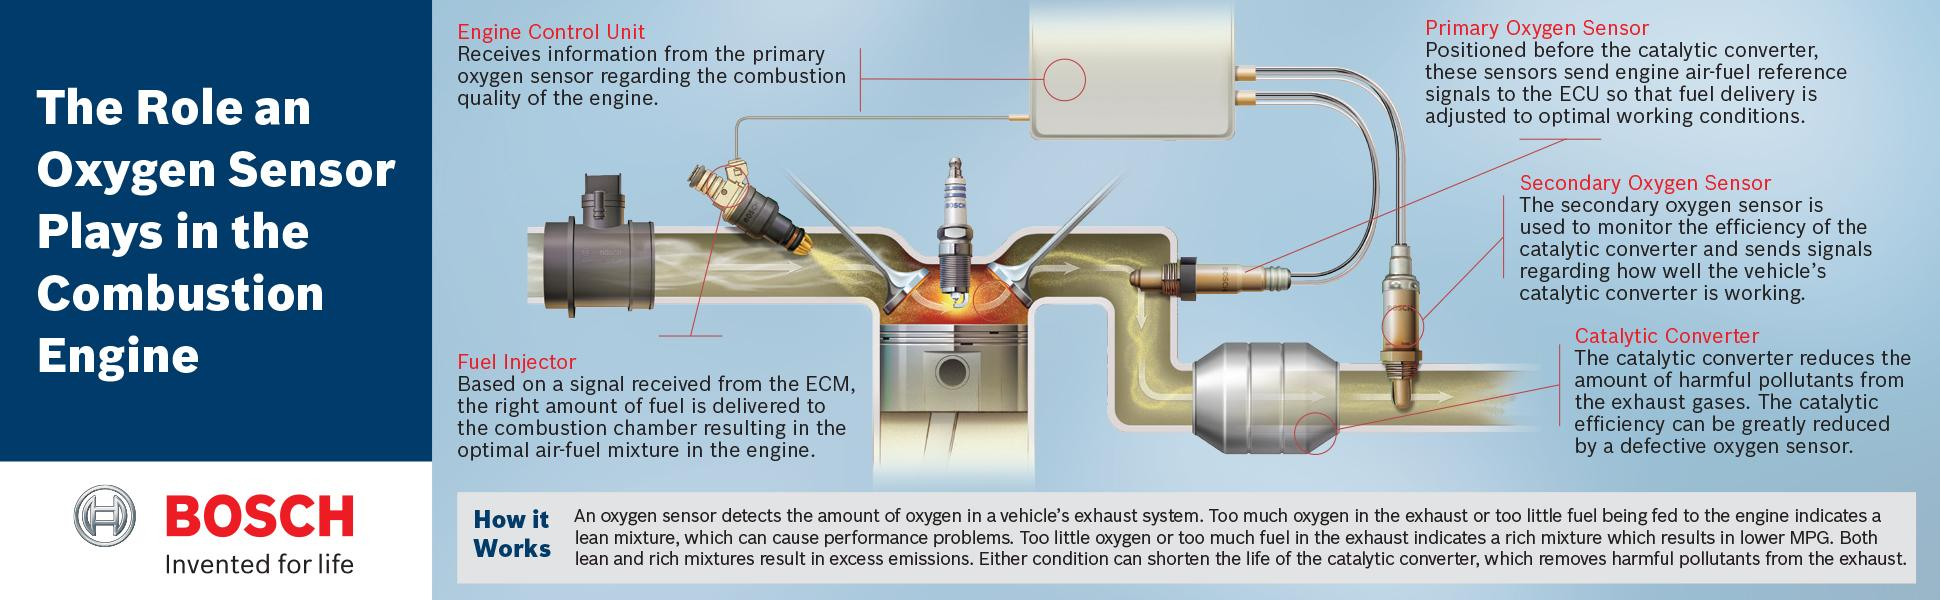 Bosch 17014 Oxygen Sensor Original Equipment Rolls Vw Jetta Vr6 Engine Diagram Additionally On Harley Fuel Pet View Larger